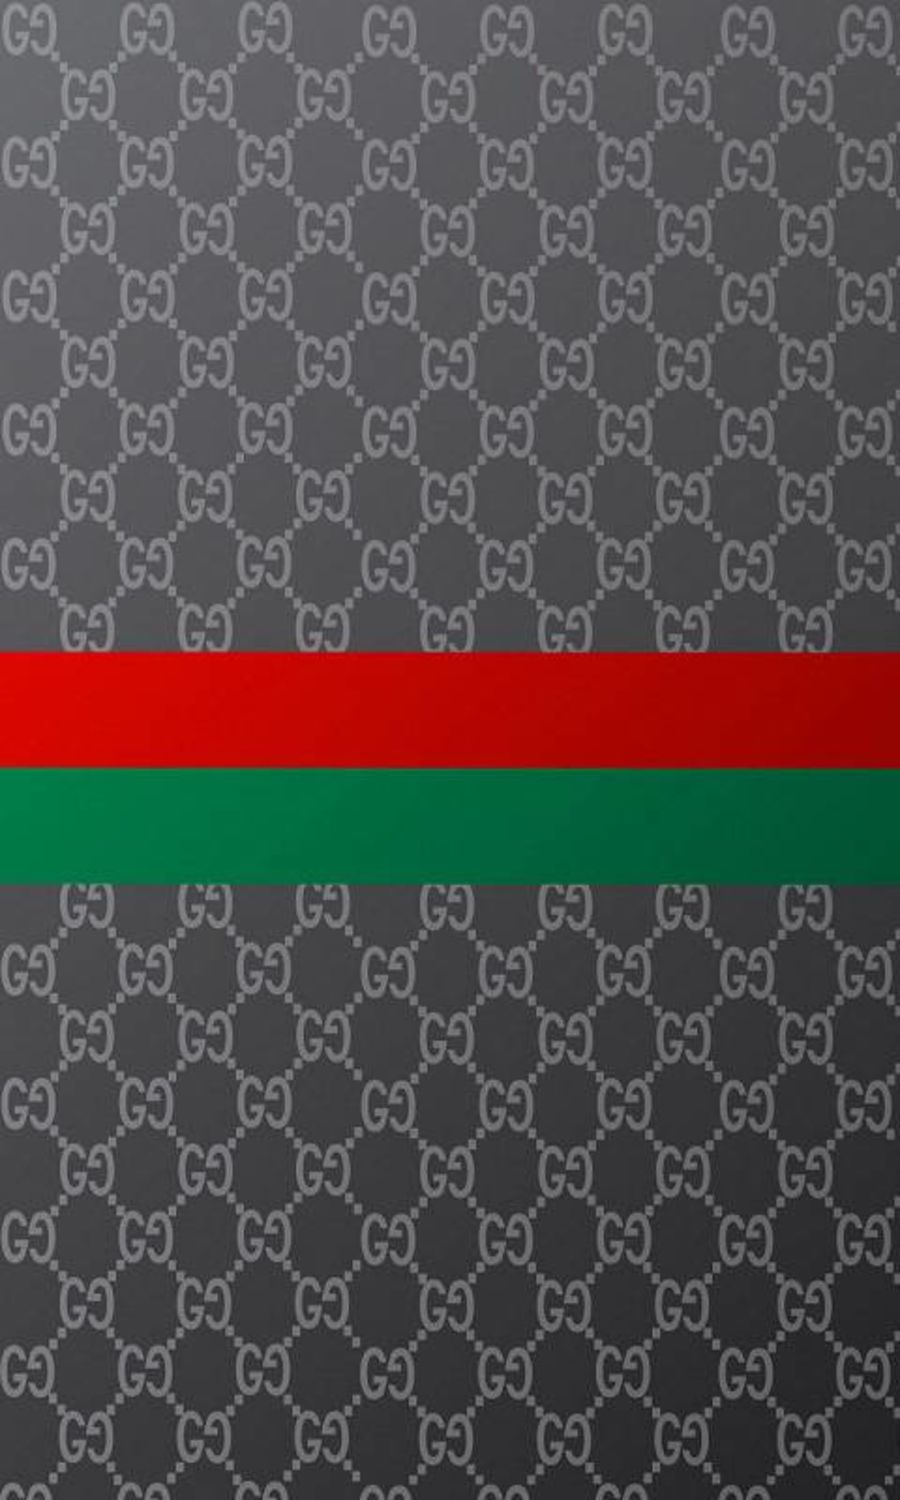 Gucci print red stripe and grey icing sheet or wafer sheet